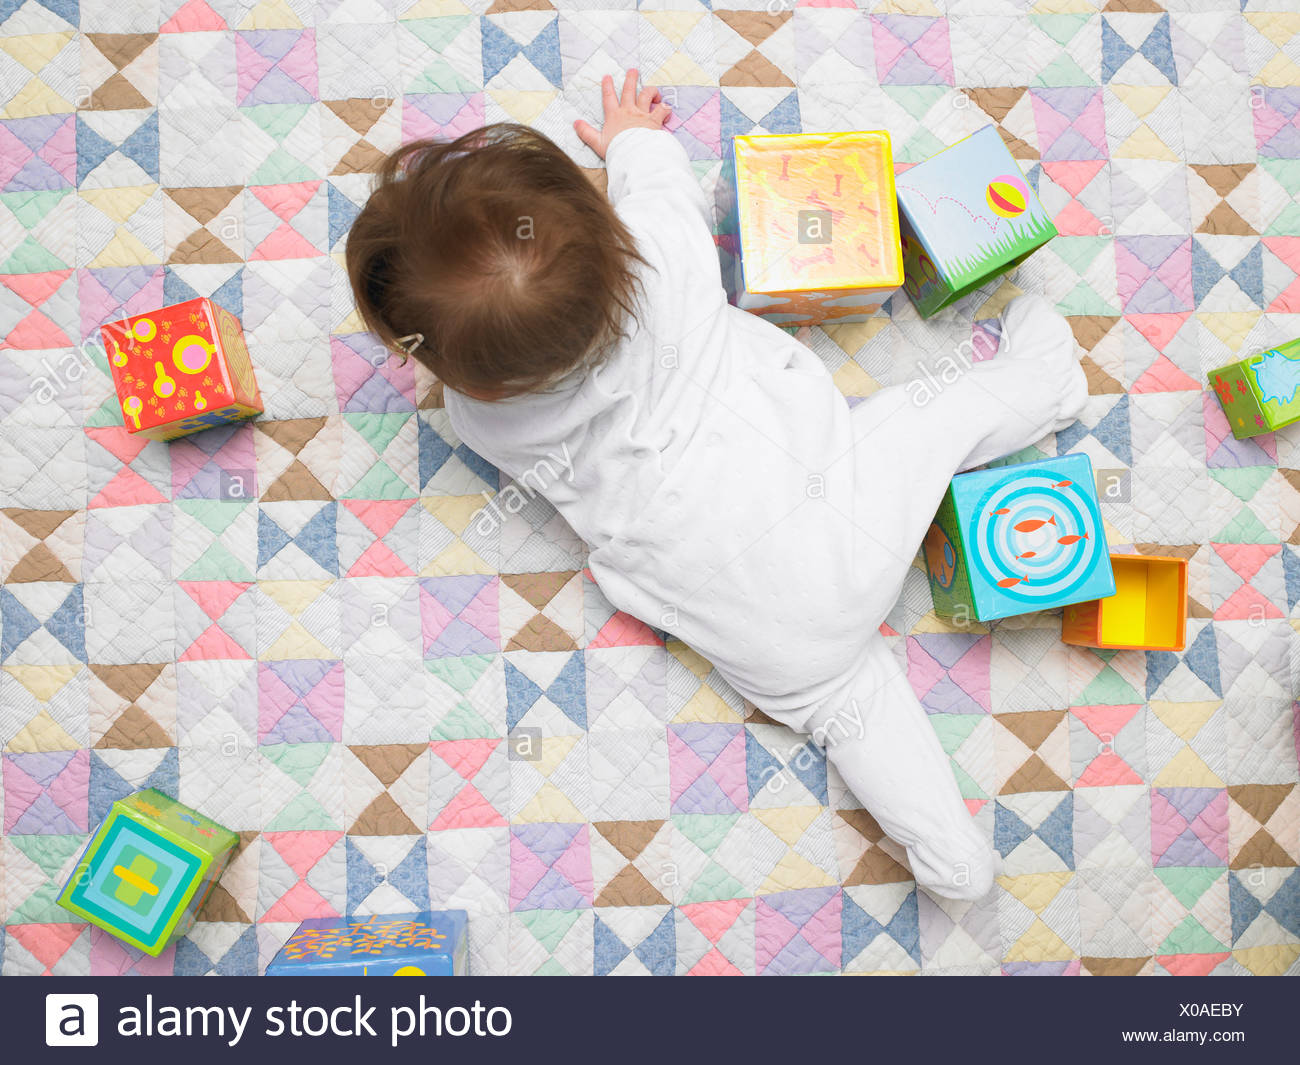 Baby with cubes on quilt - Stock Image